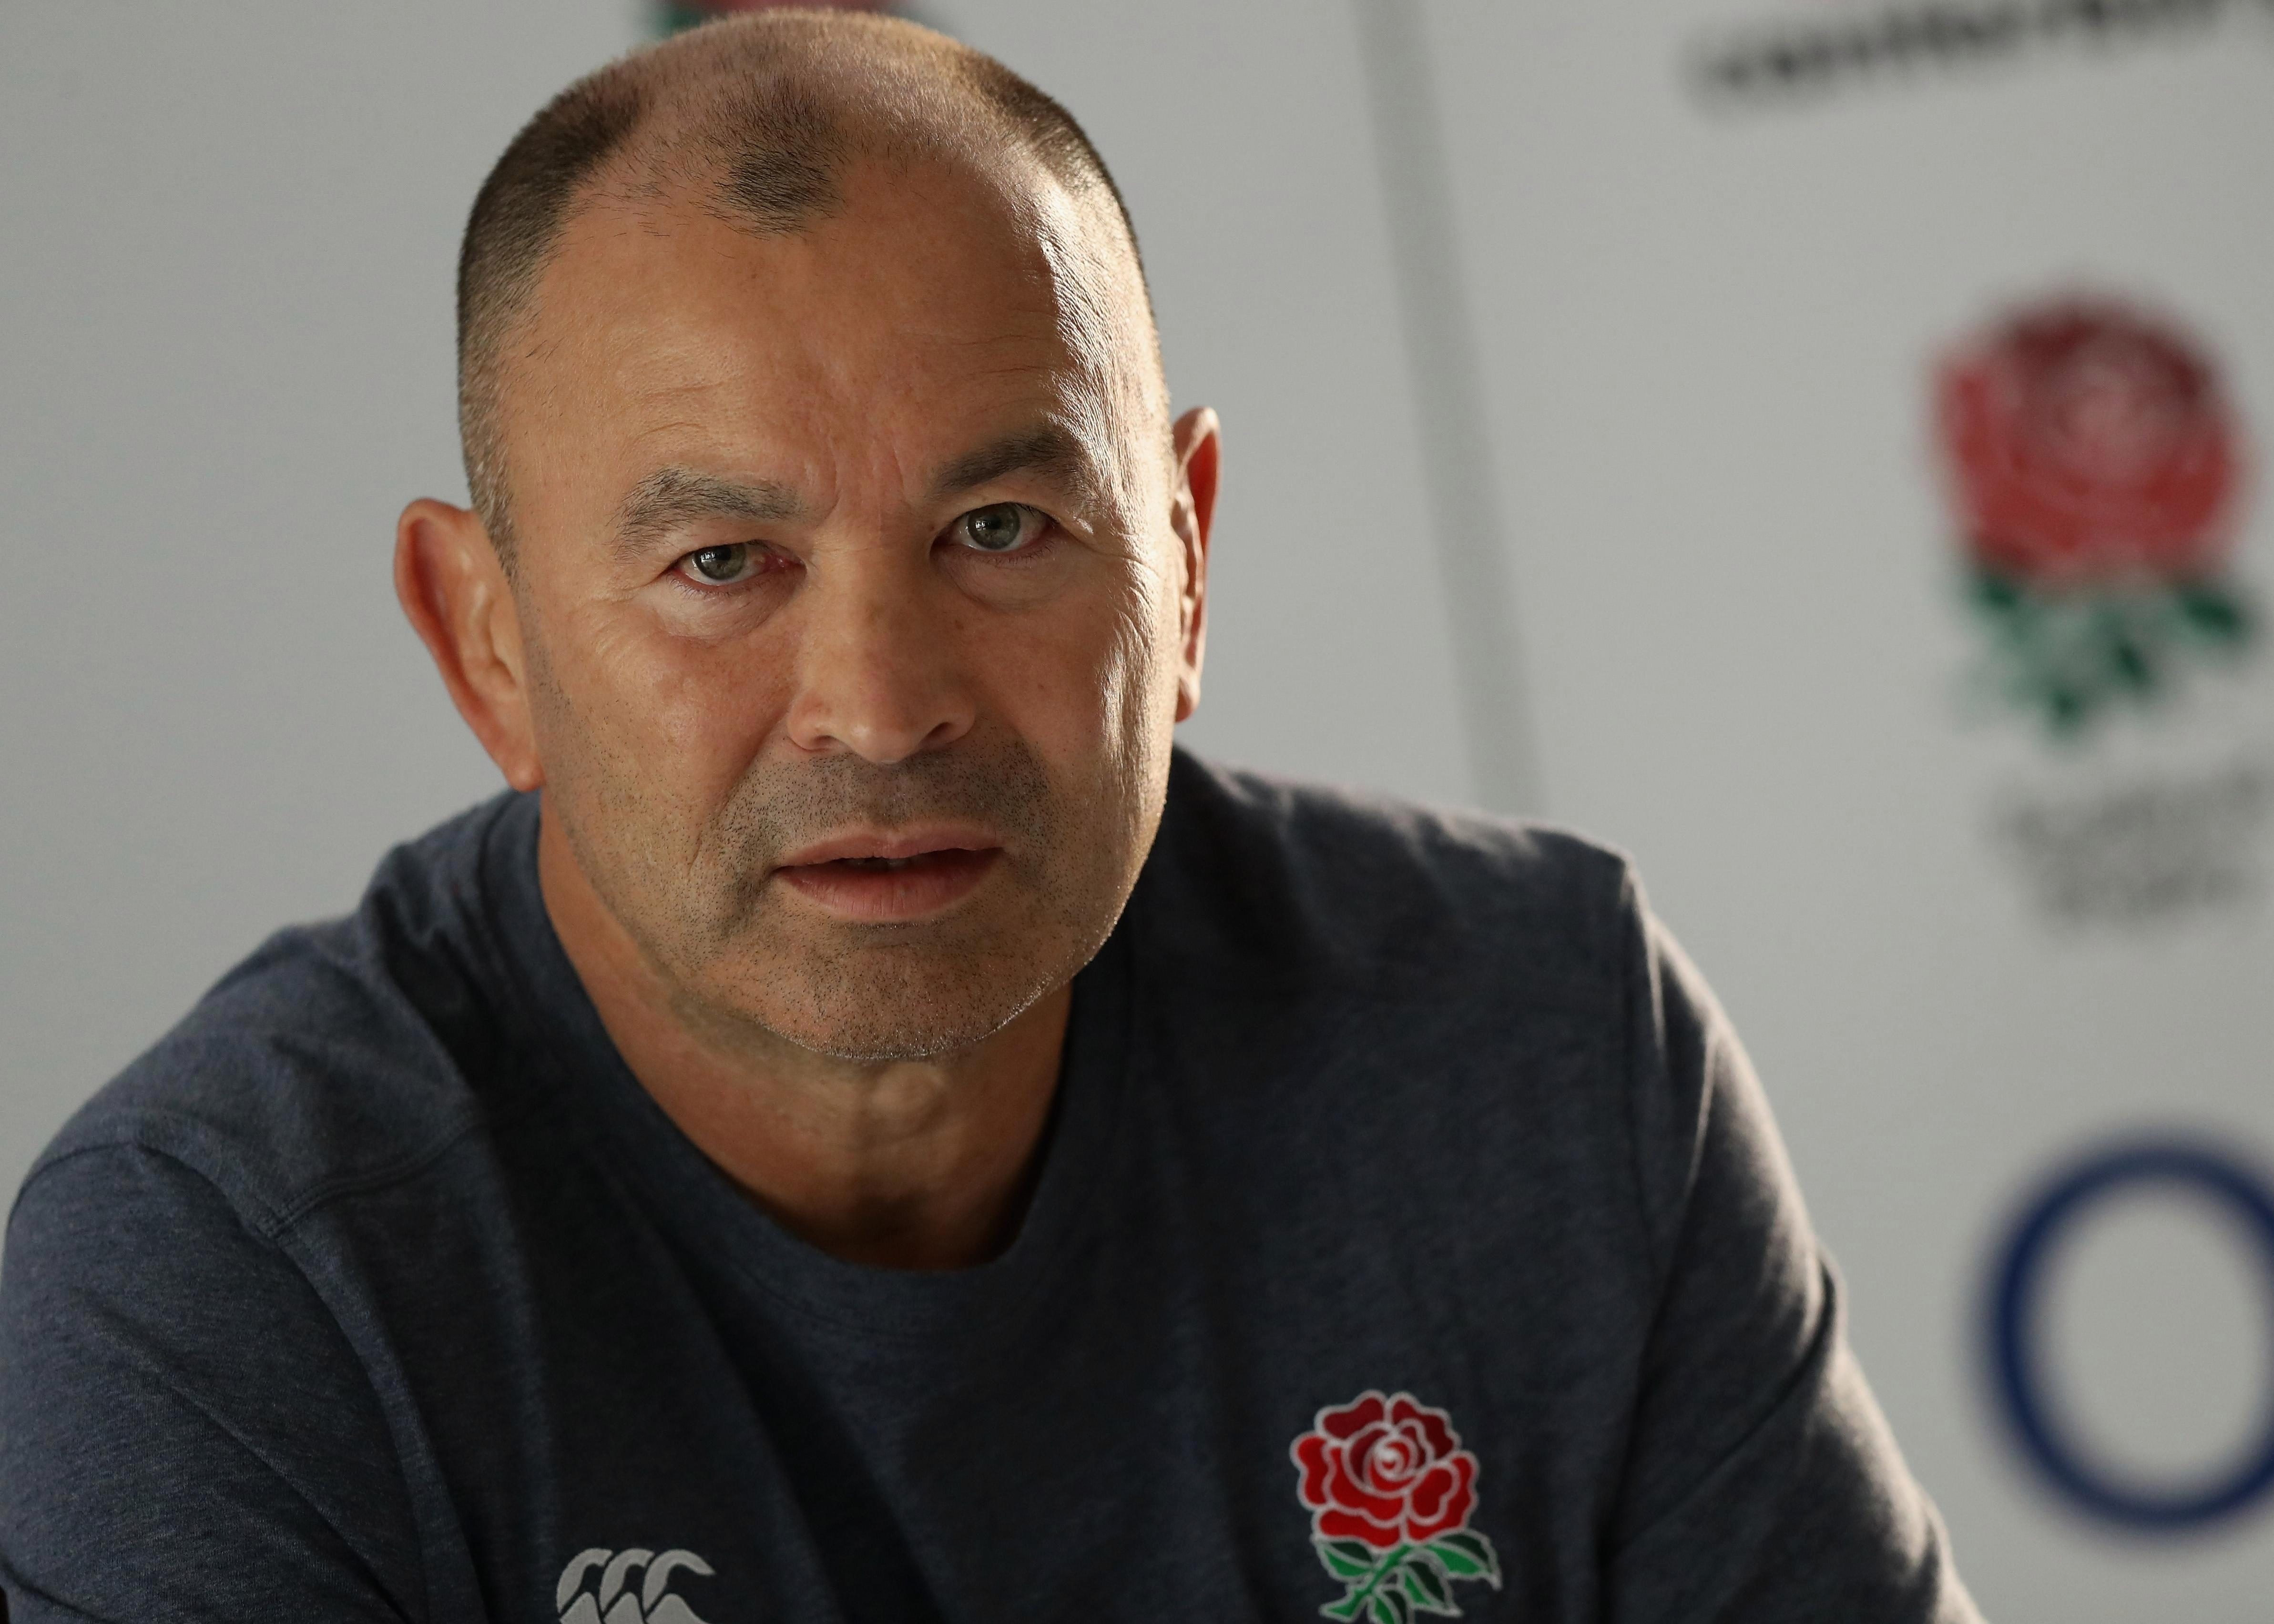 Eddie Jones has been in no mood to make friends on England's tour of South Africa